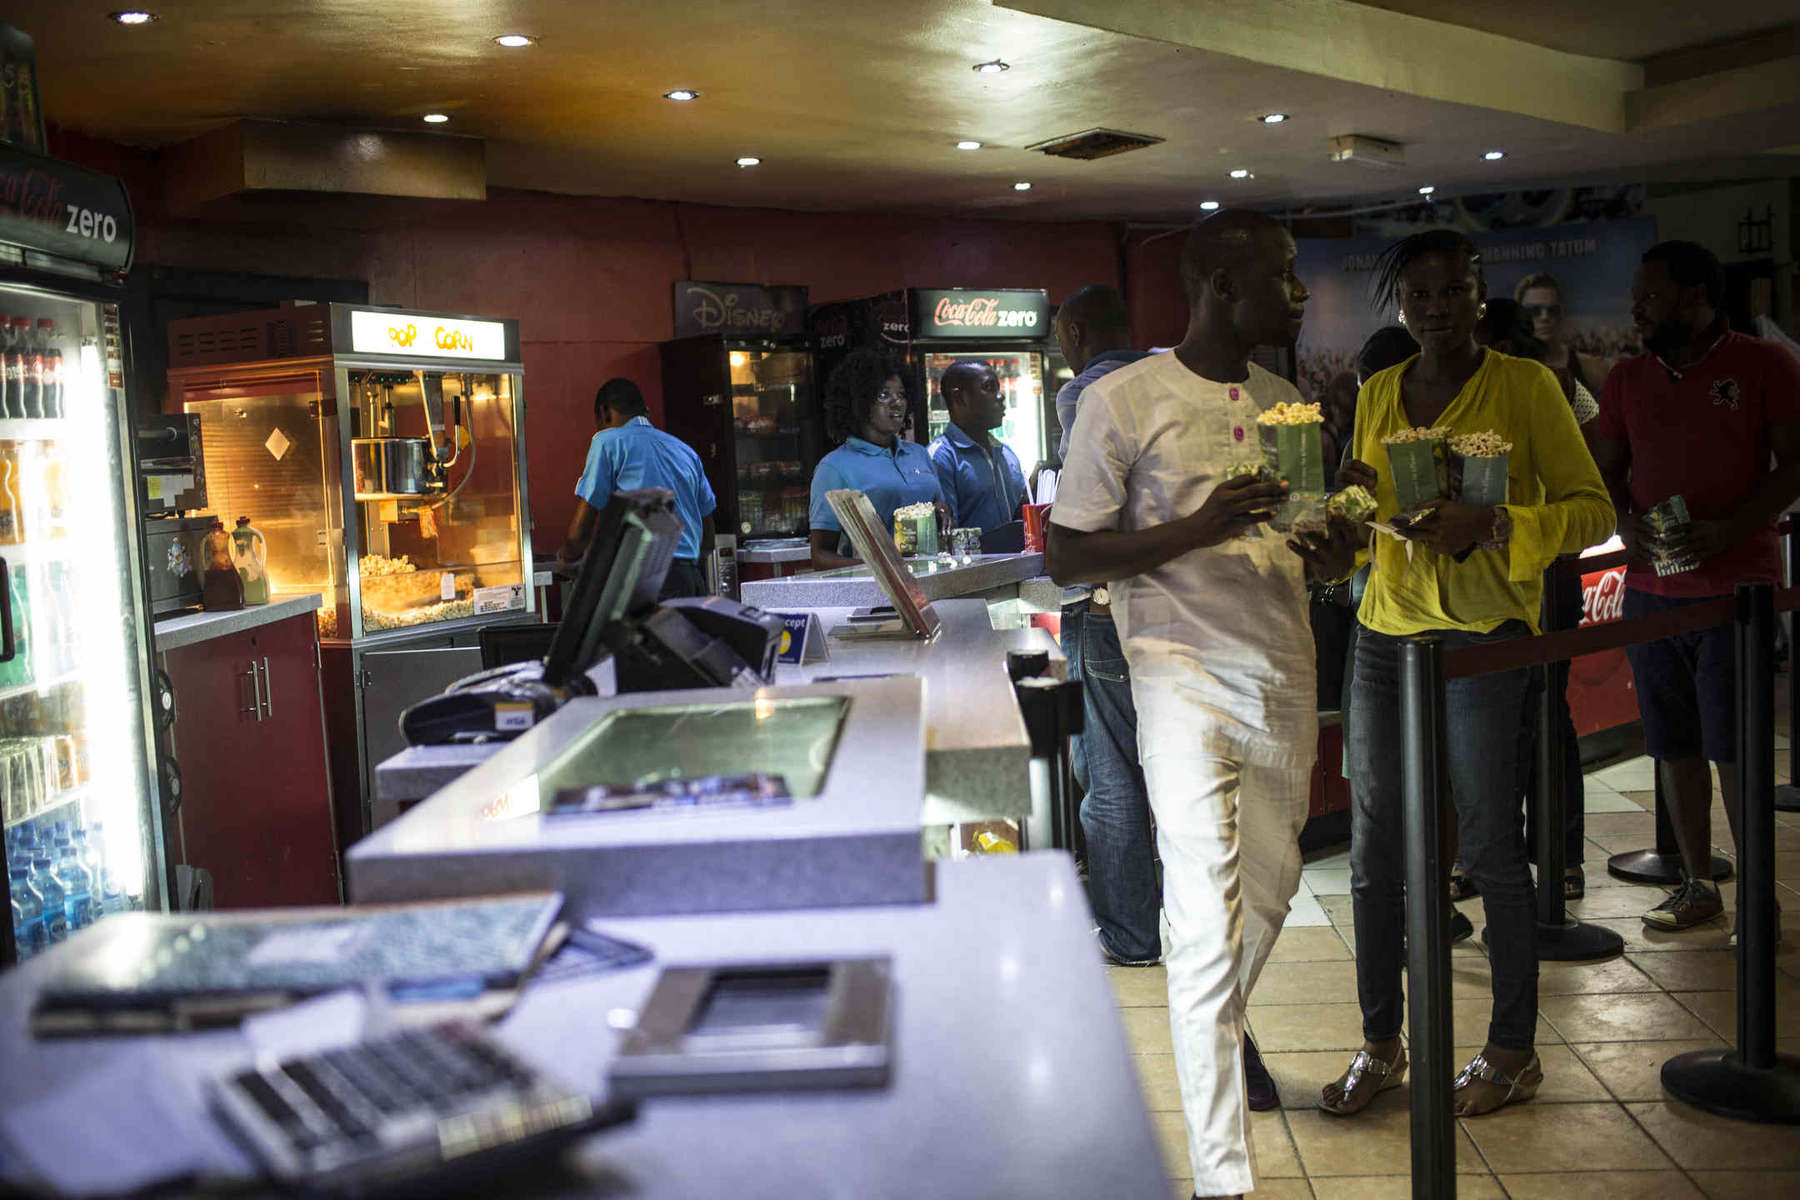 Movie goers wait in line to buy popcorn at Silverbird, one of only three movie theaters in Lagos, a city of nearly 20 million. Most people watch movies at home or in informal settings, though Western blockbusters and the occasional Nollywood hit still get some screen time.